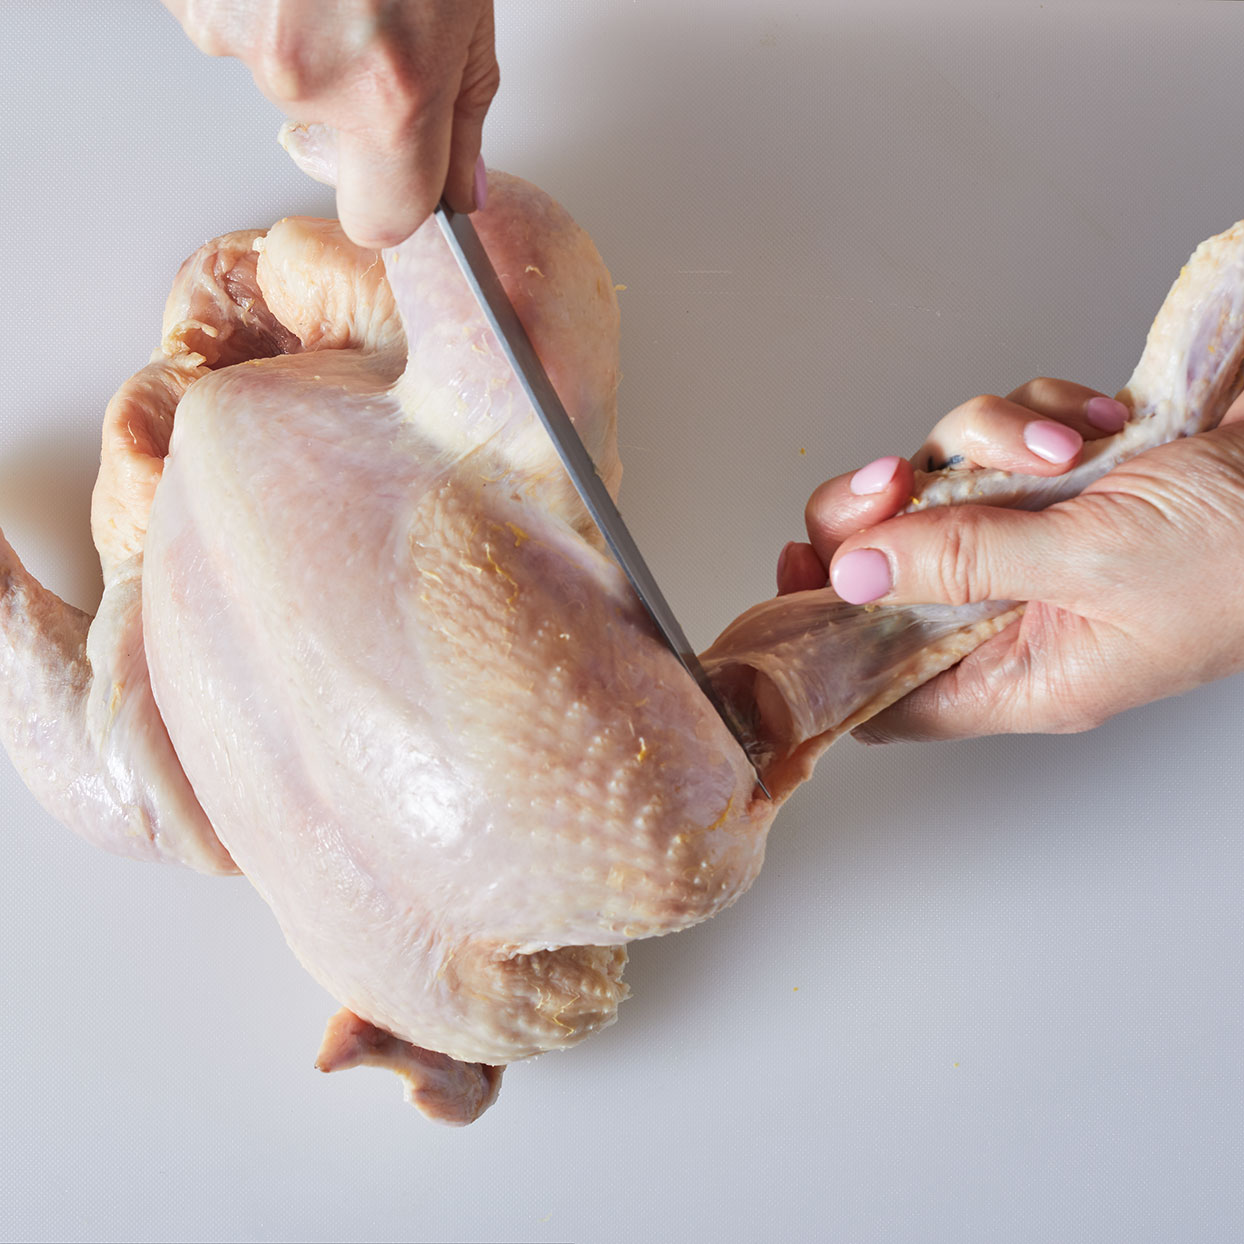 How to cut up a whole chicken step 1